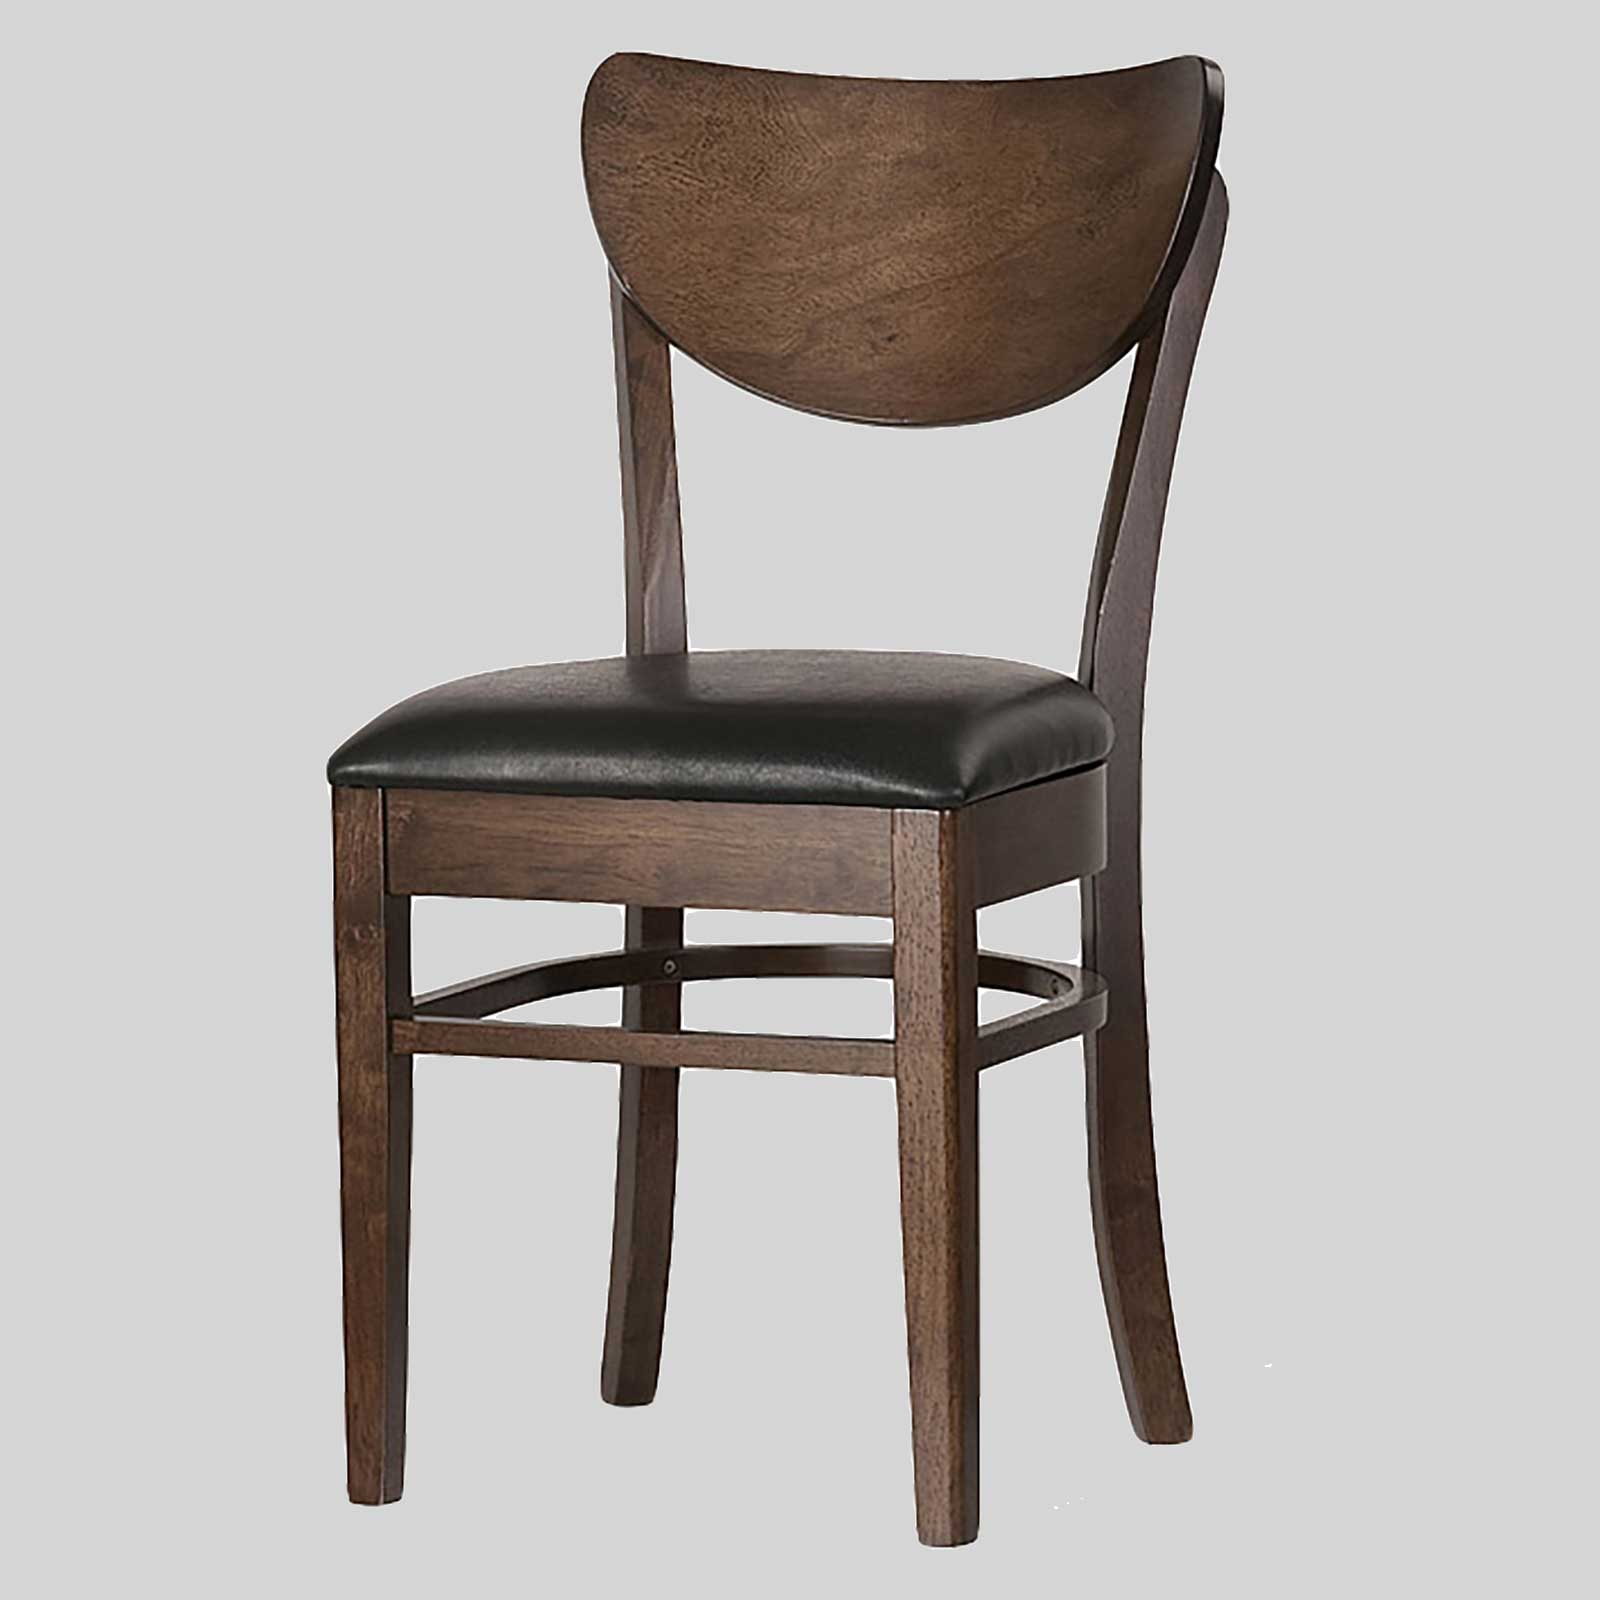 timber padded chair for restaurants astor concept collections